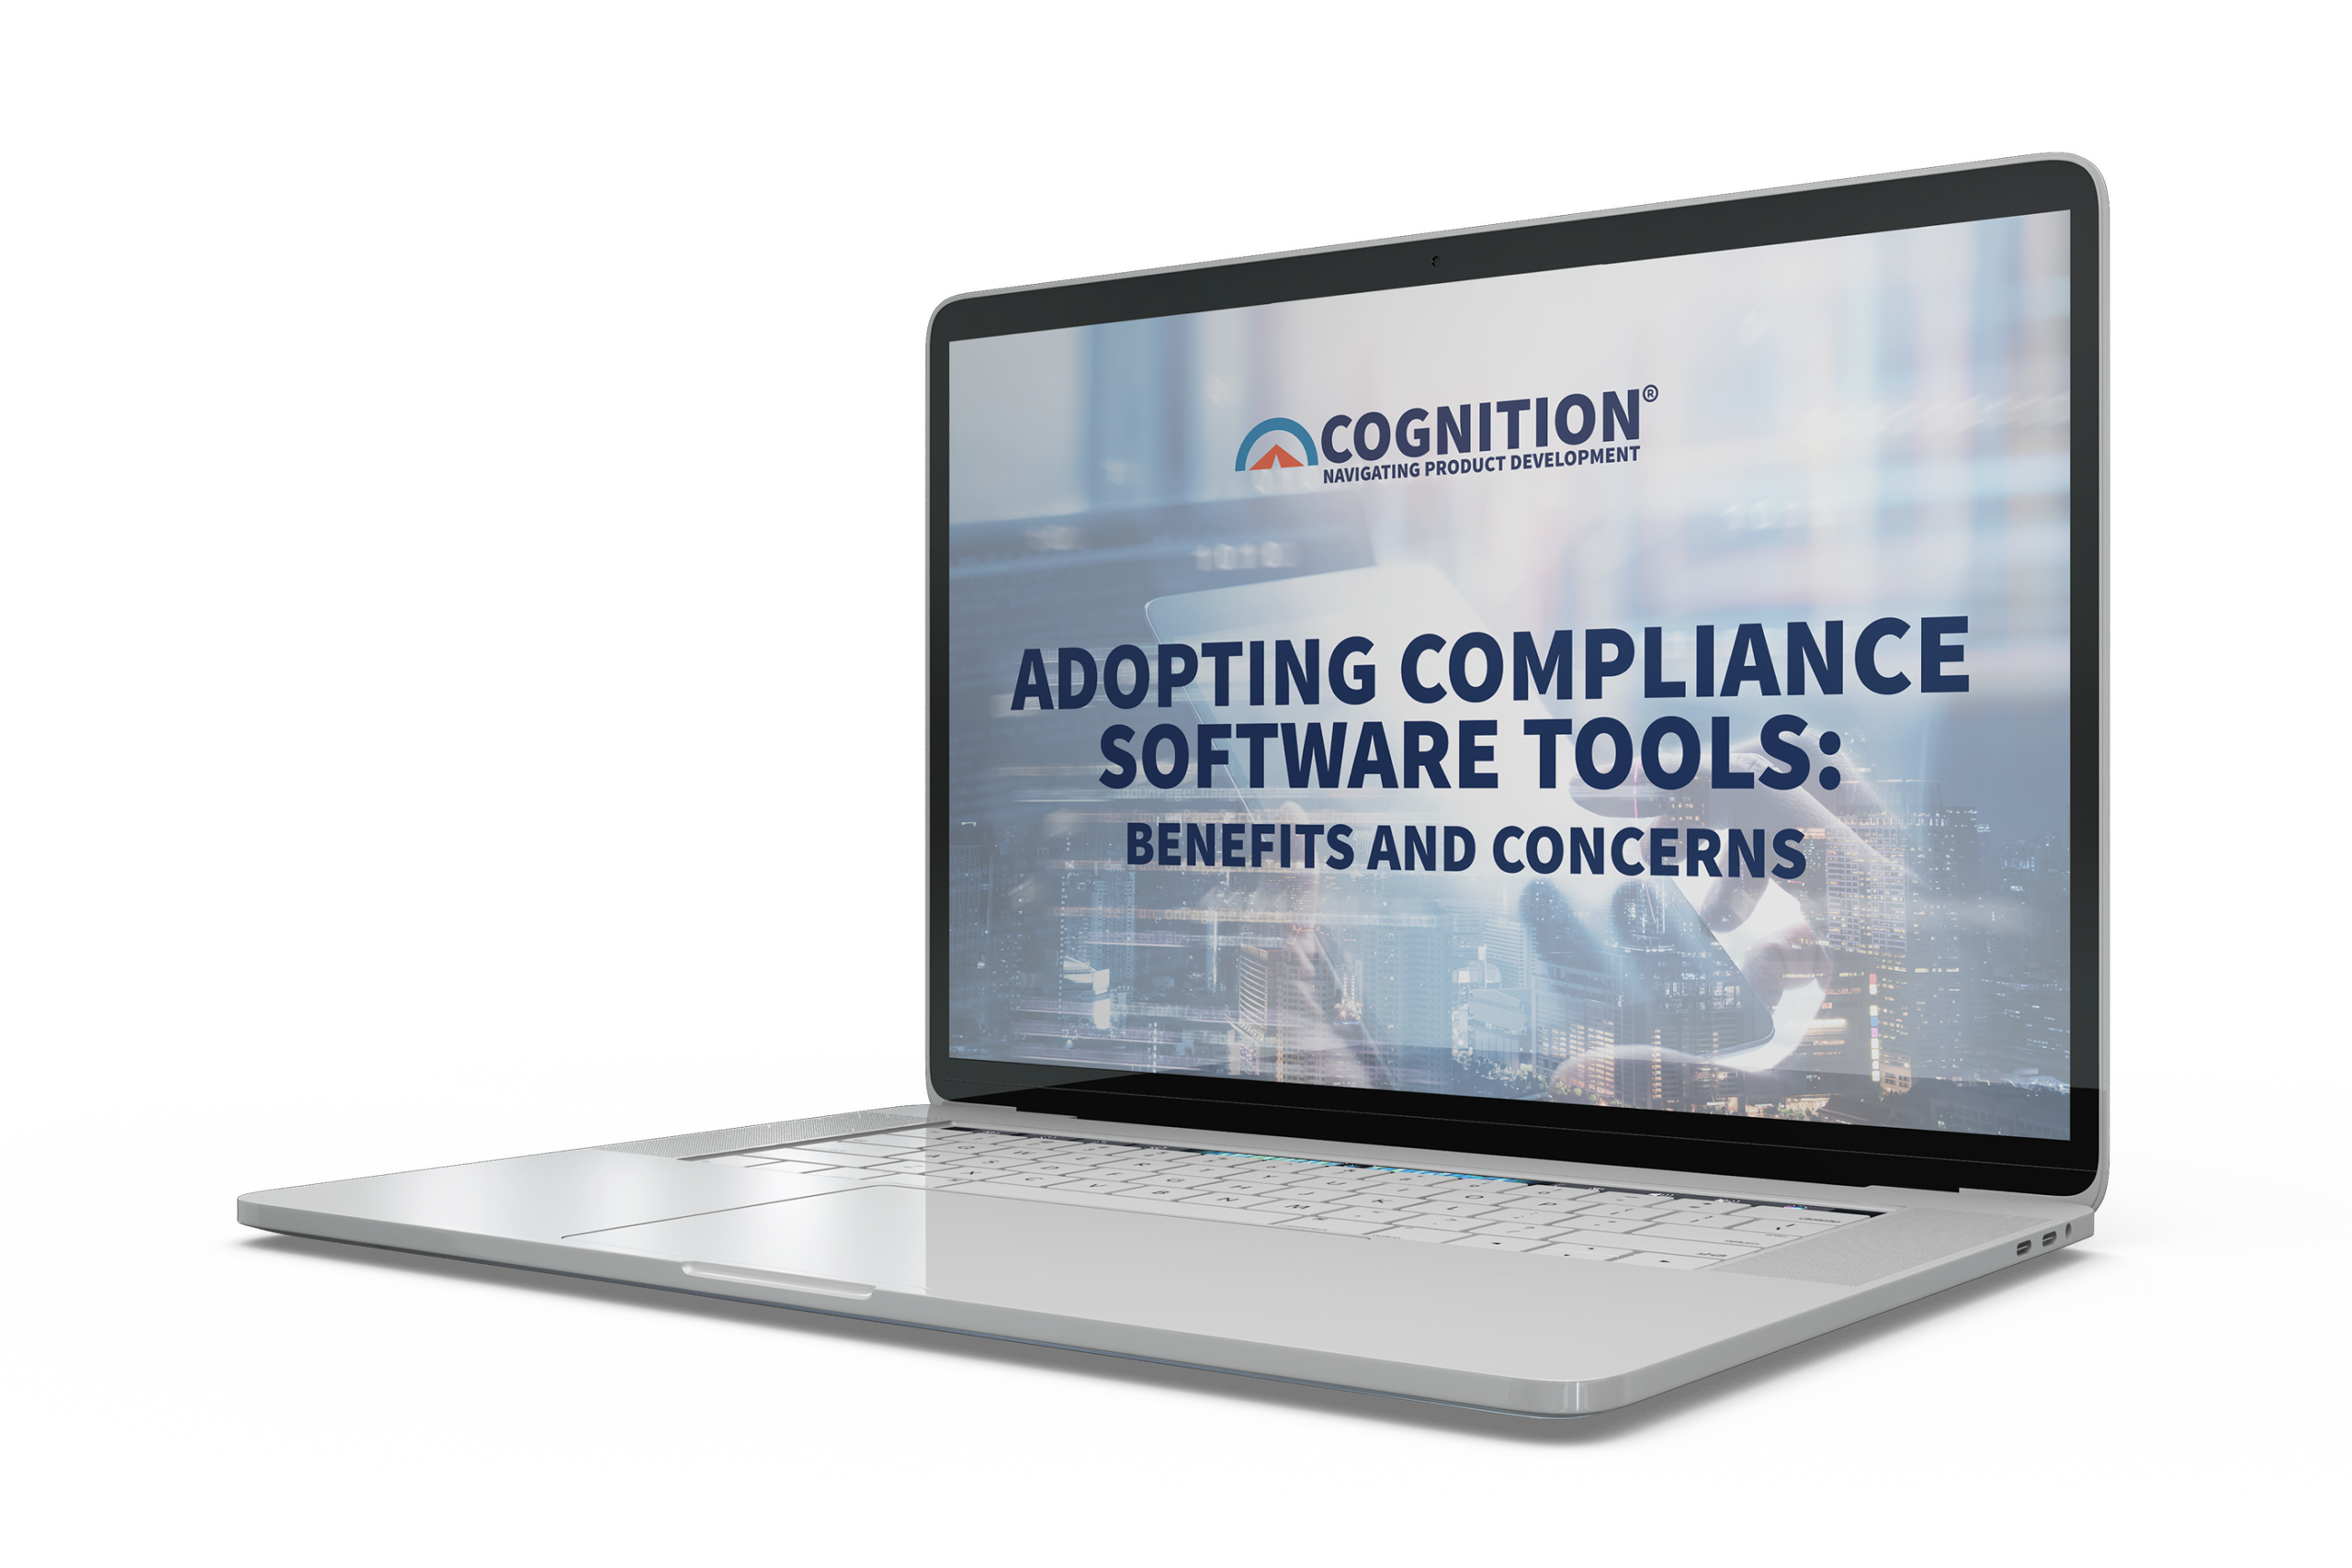 Cognition Corporation eBook: Adopting Compliance Software Tools - Benefits and Concerns